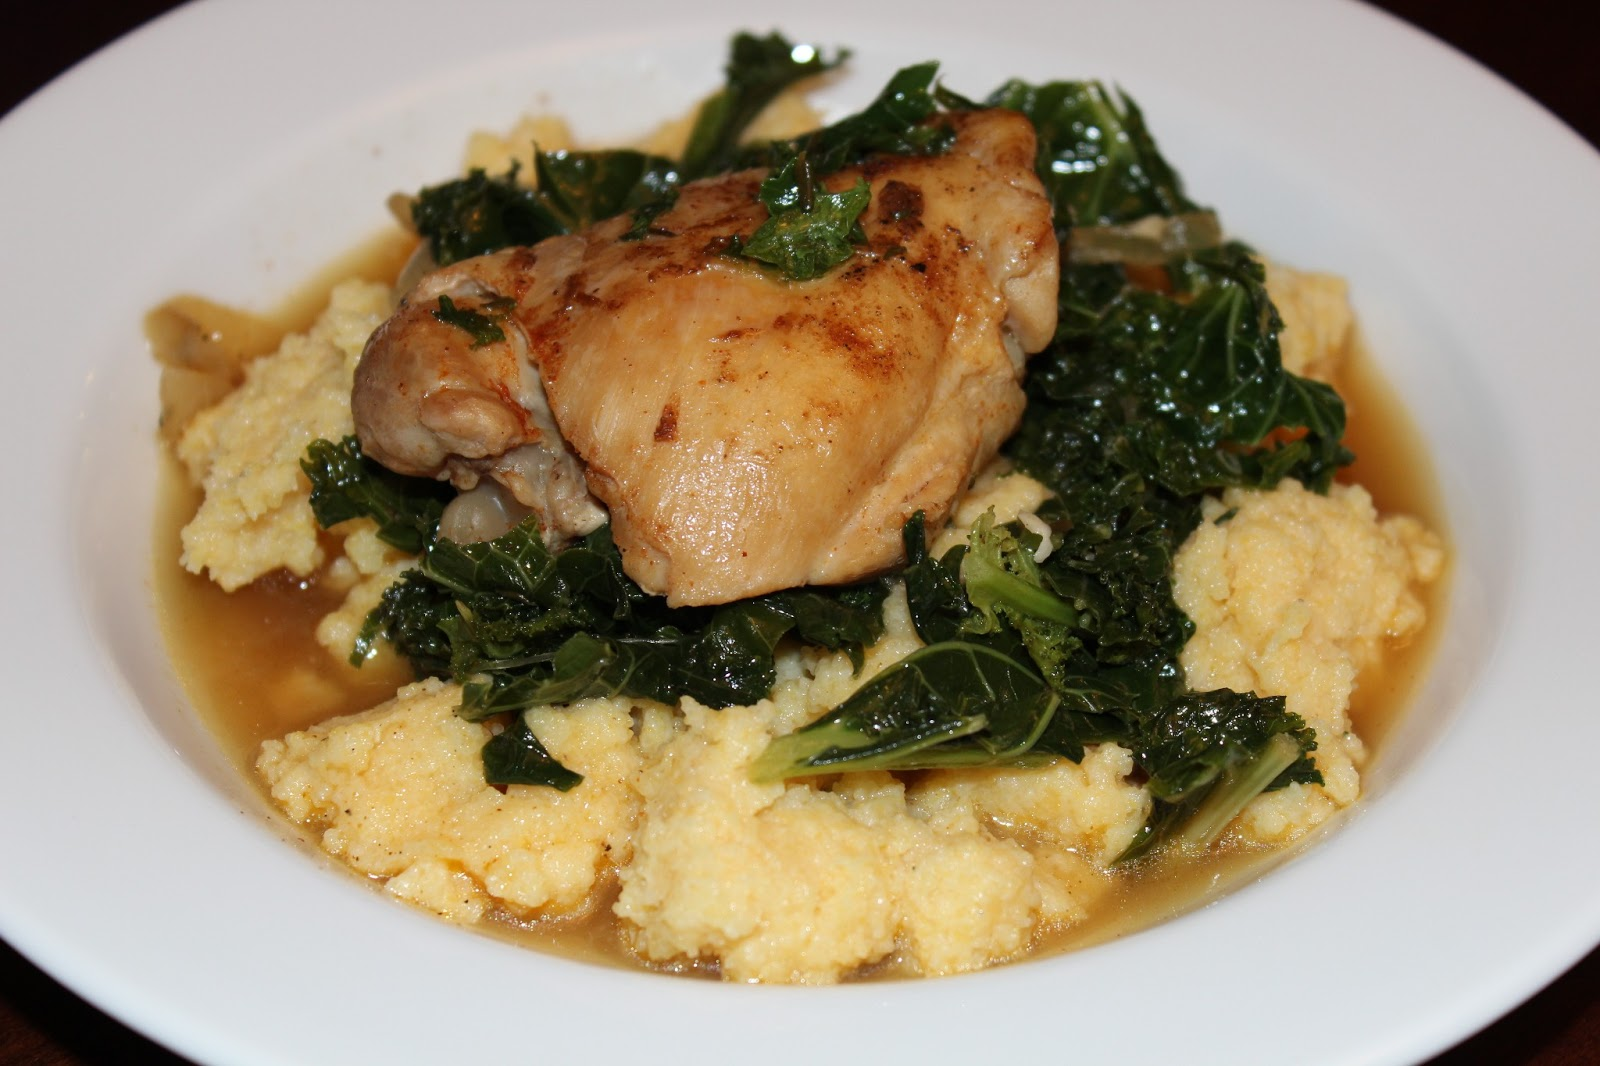 The Garlic Press: Google's Braised Chicken and Kale